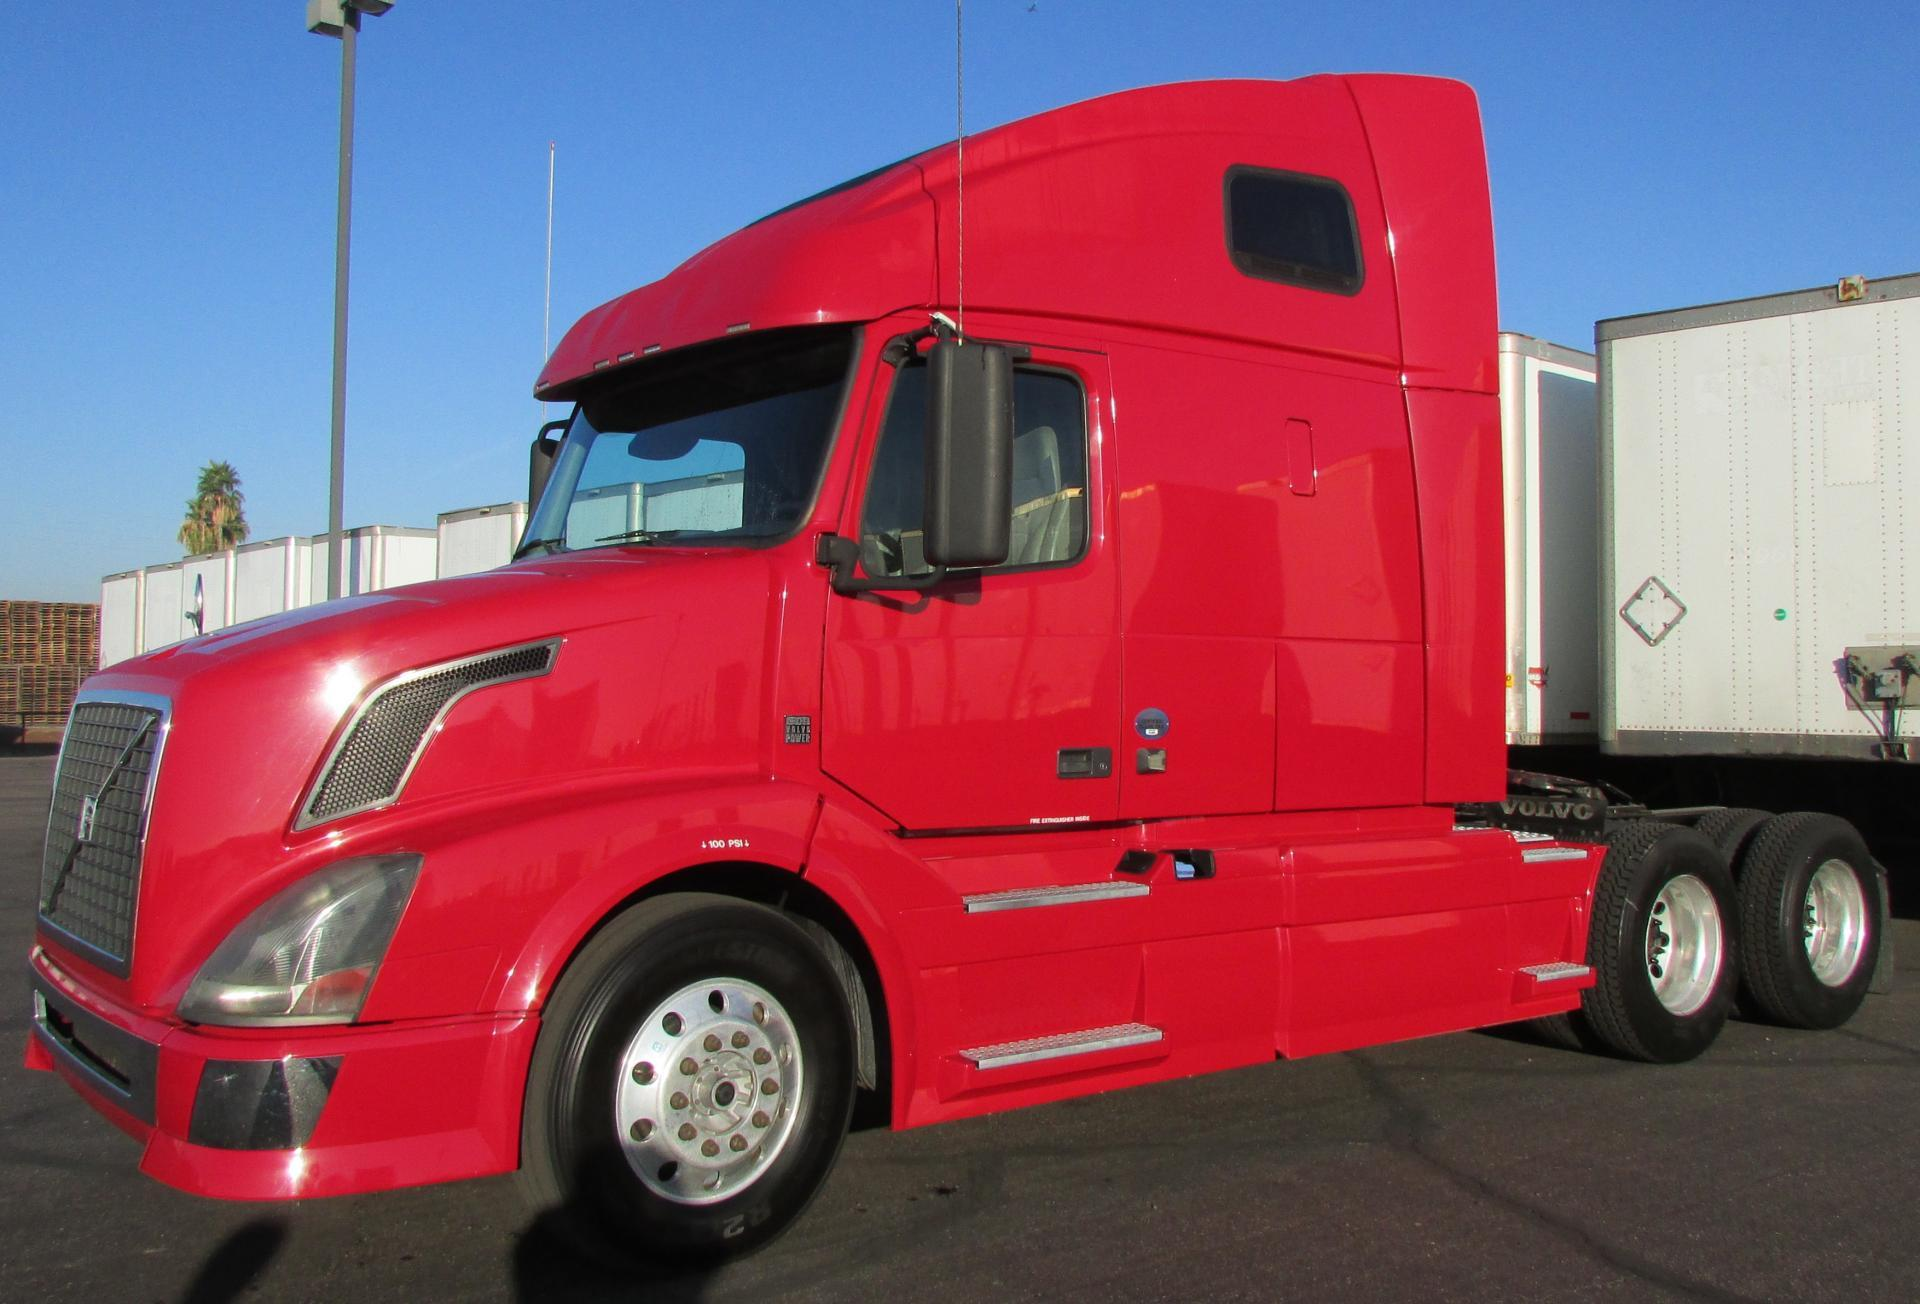 USED 2011 VOLVO 670 DAYCAB TRUCK #112971